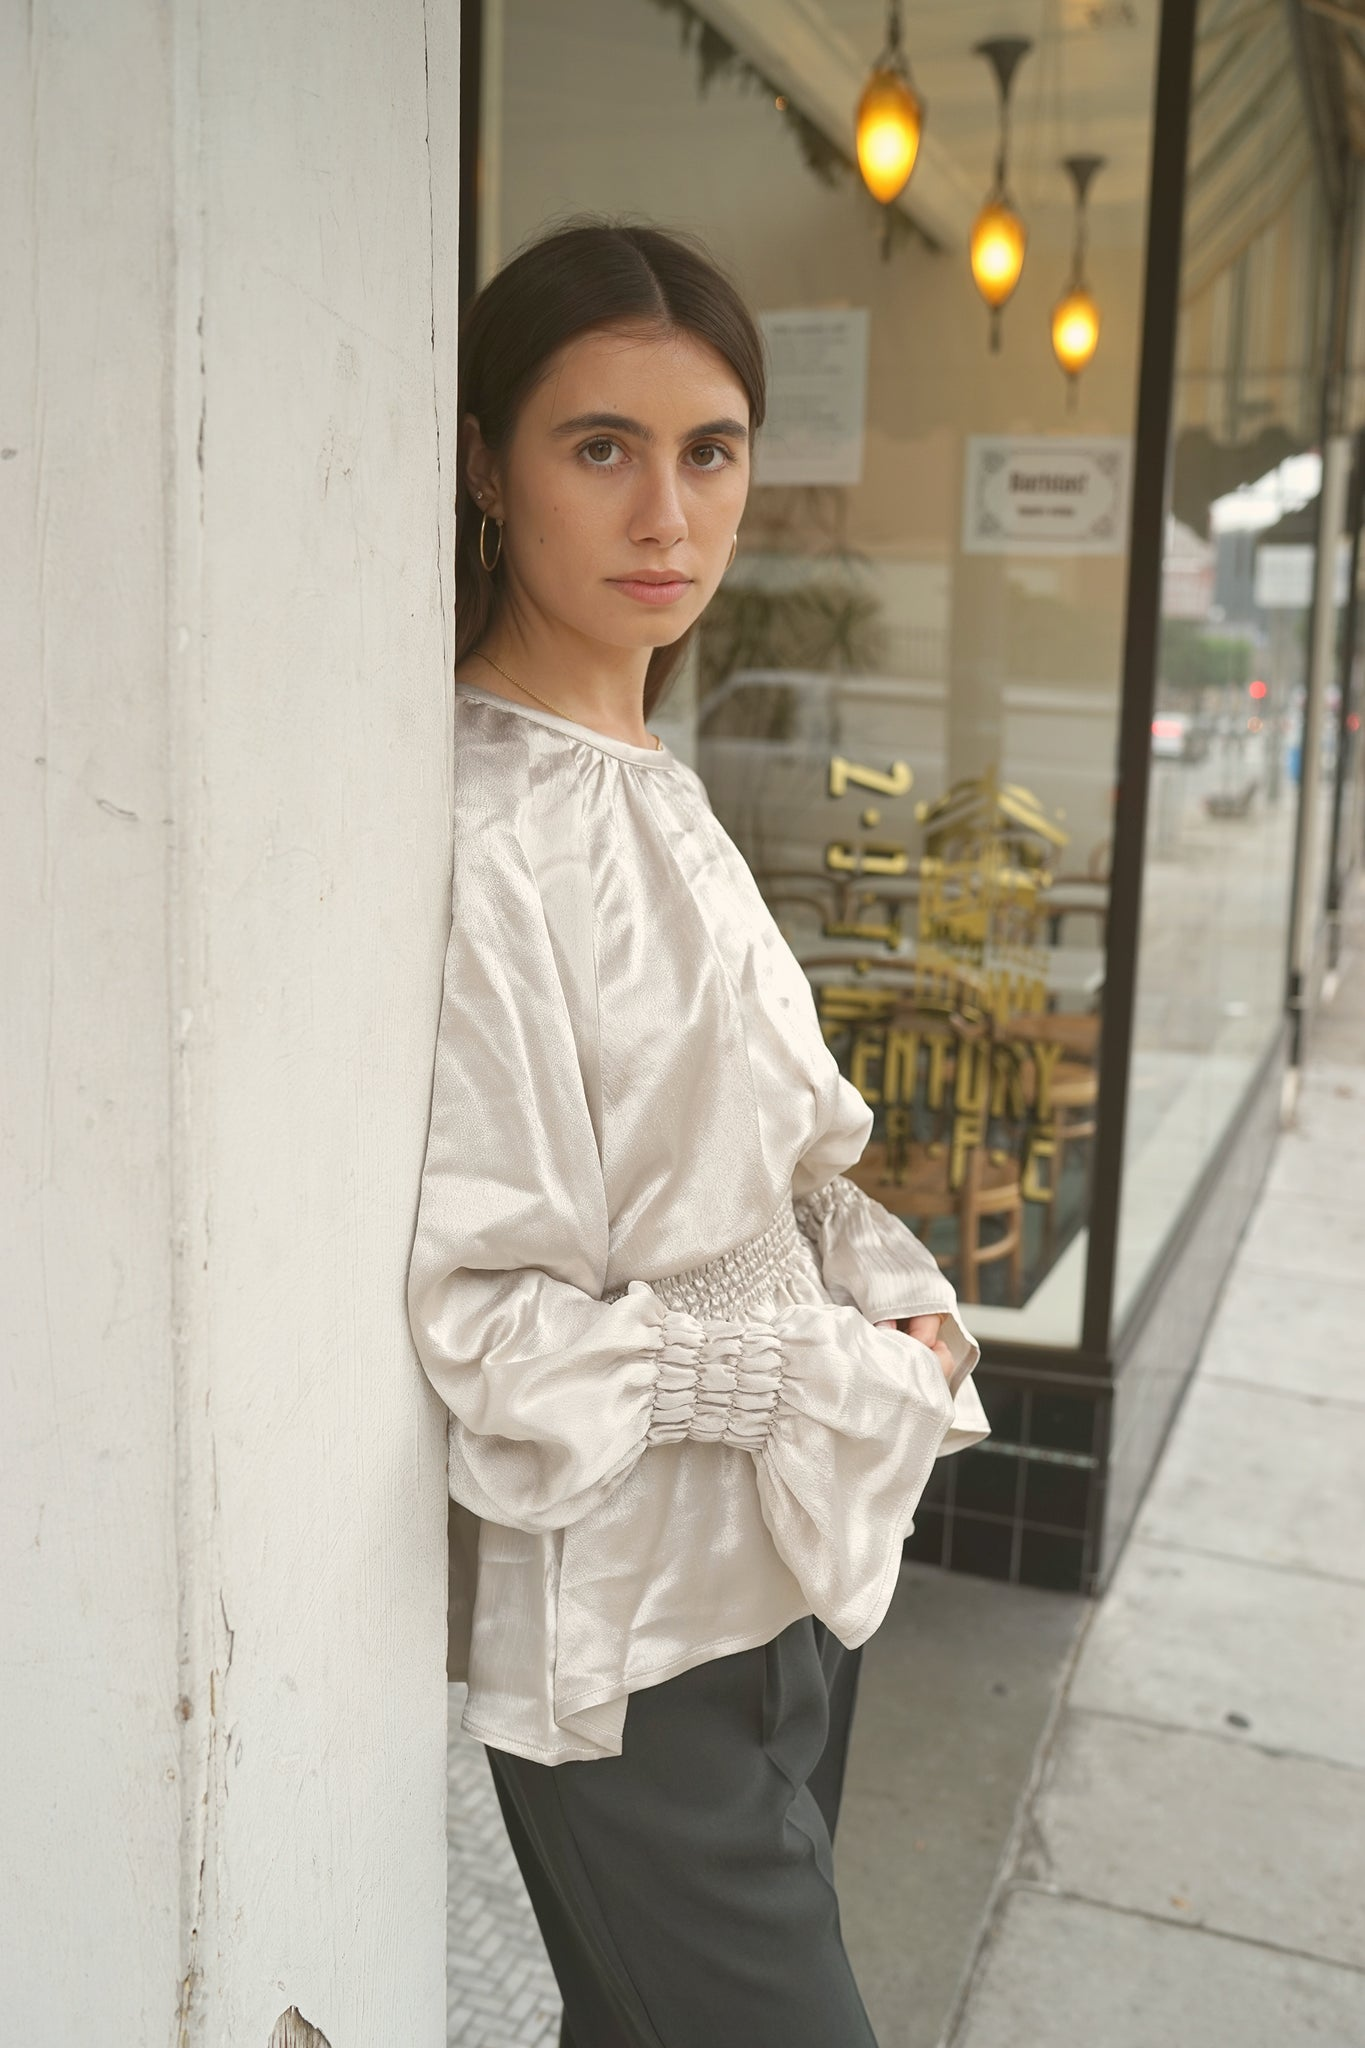 alicia de mello, sustainable fashion, slow fashion, san francisco, womens wear, sustainable brands